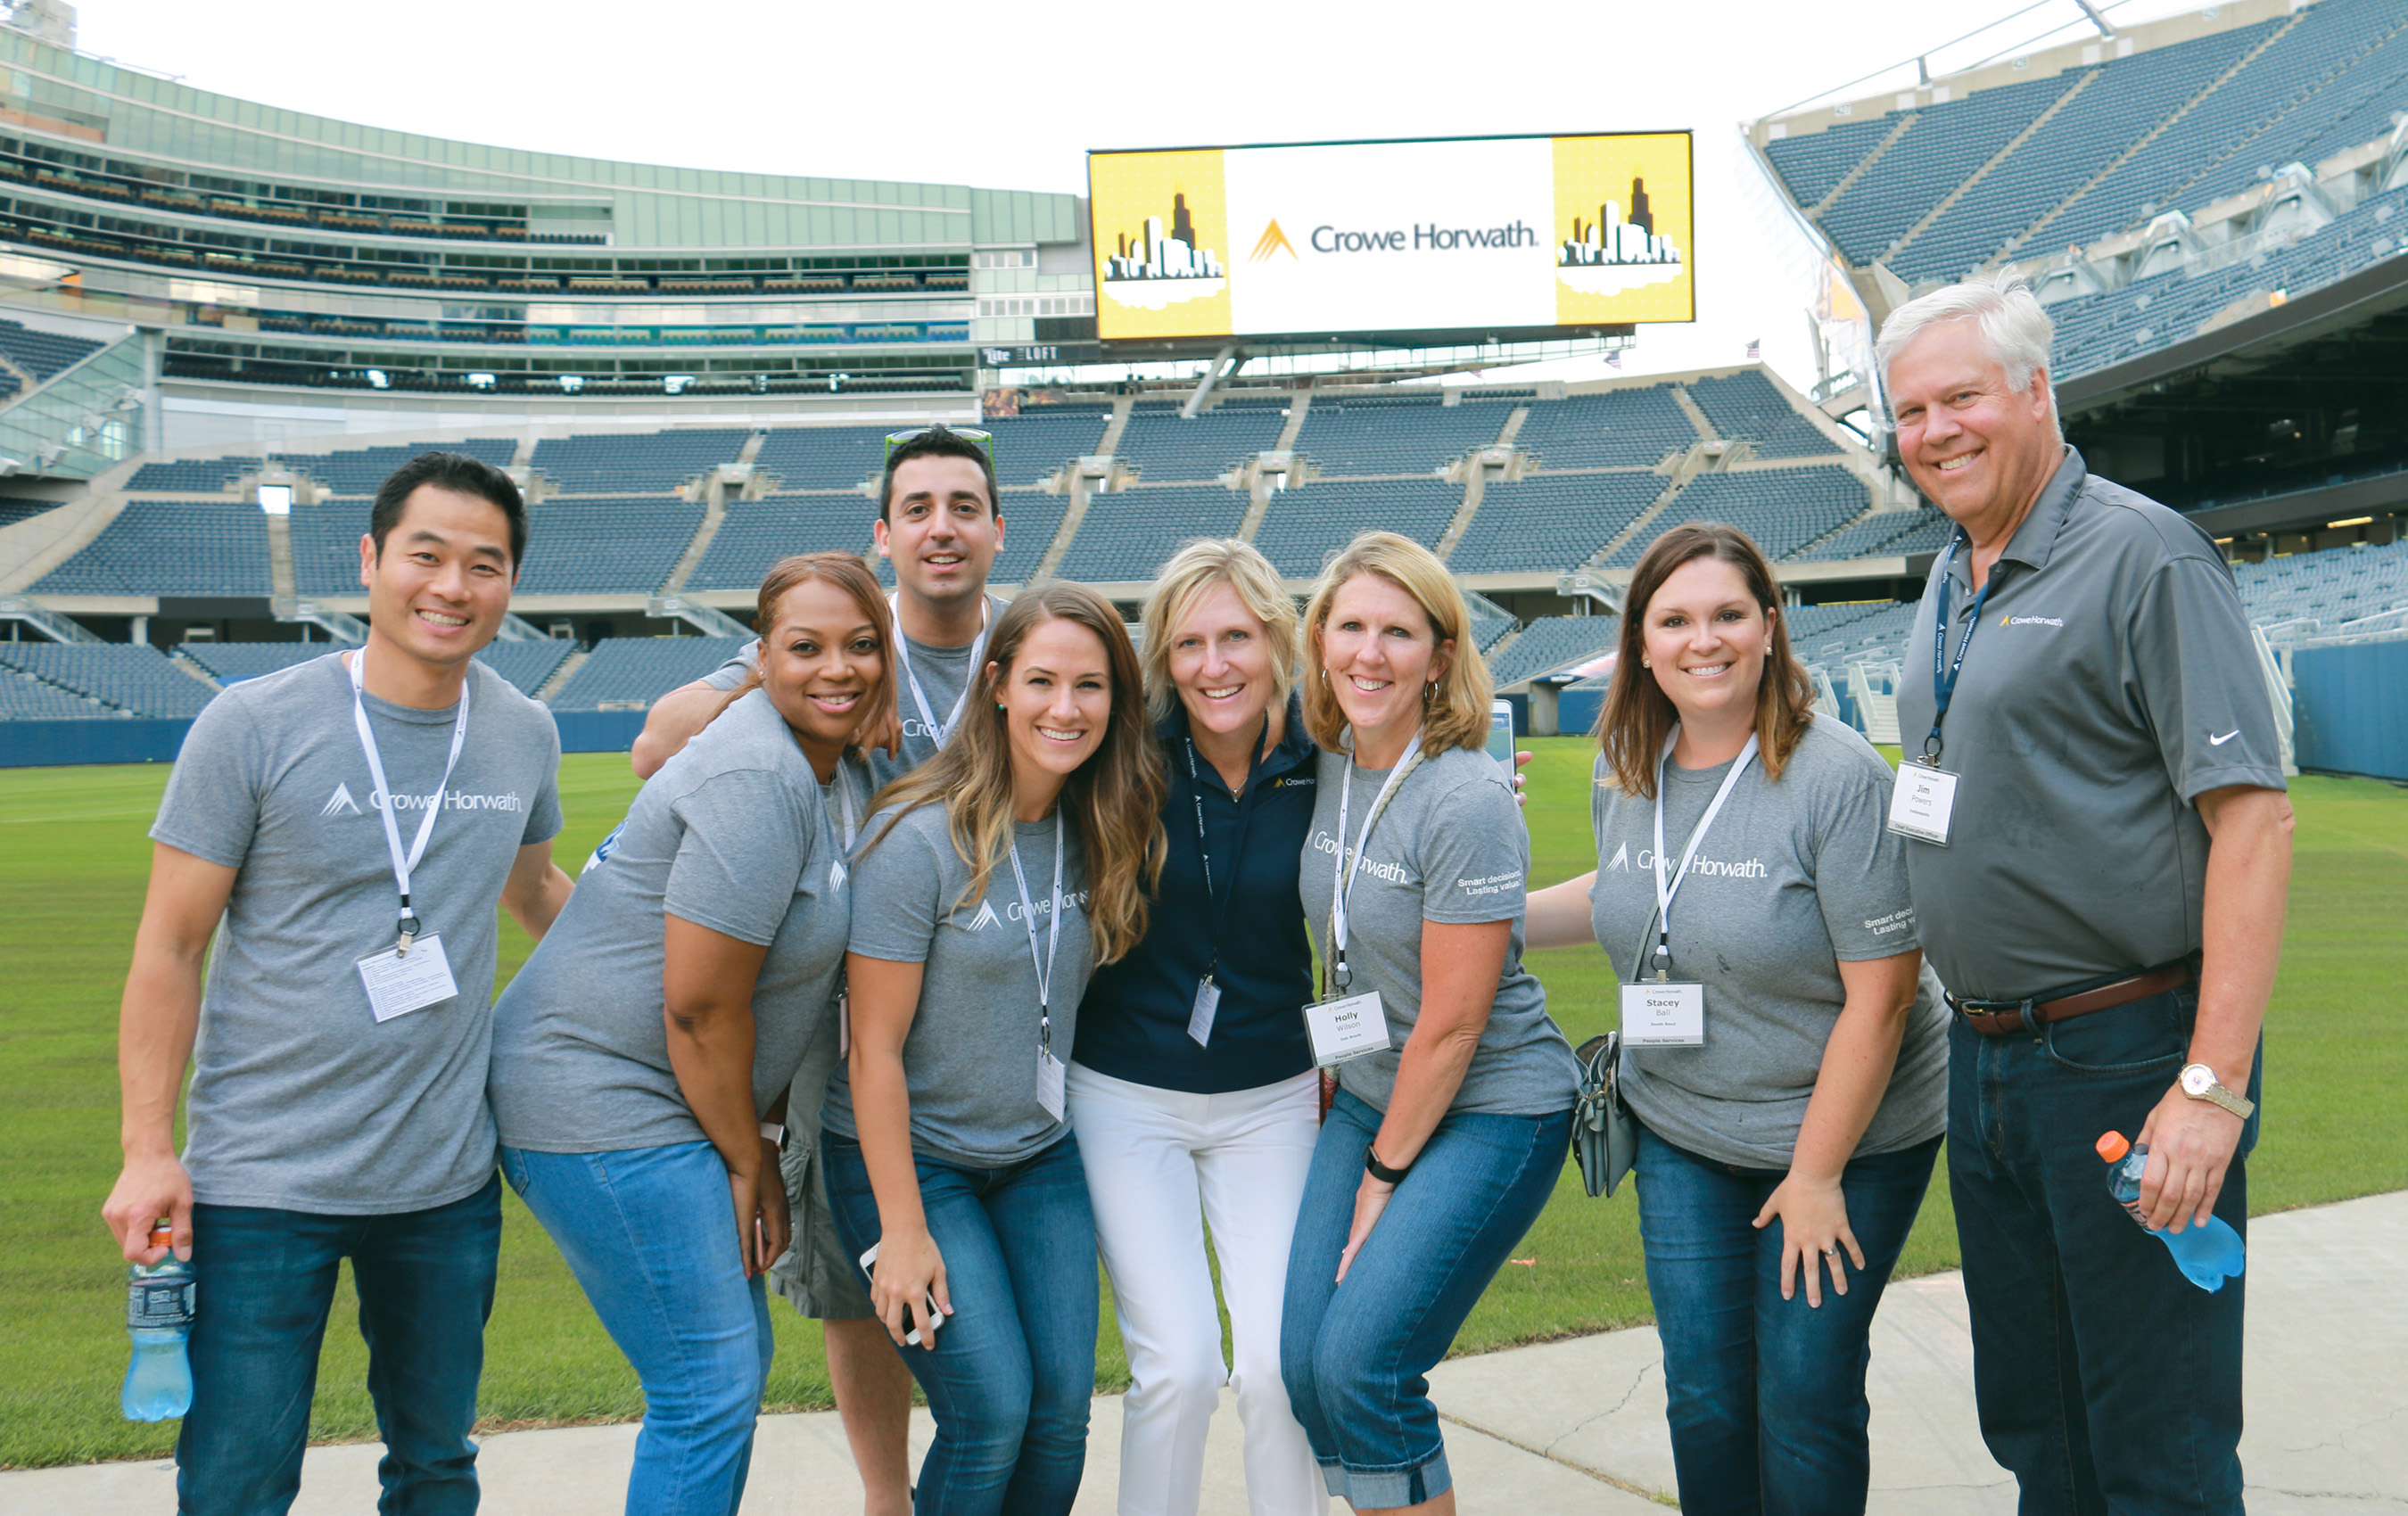 Participants at the Crowe Learn2Lead program, a national leadership program for high-achieving students, enjoy an evening outing at Soldier Field in Chicago.